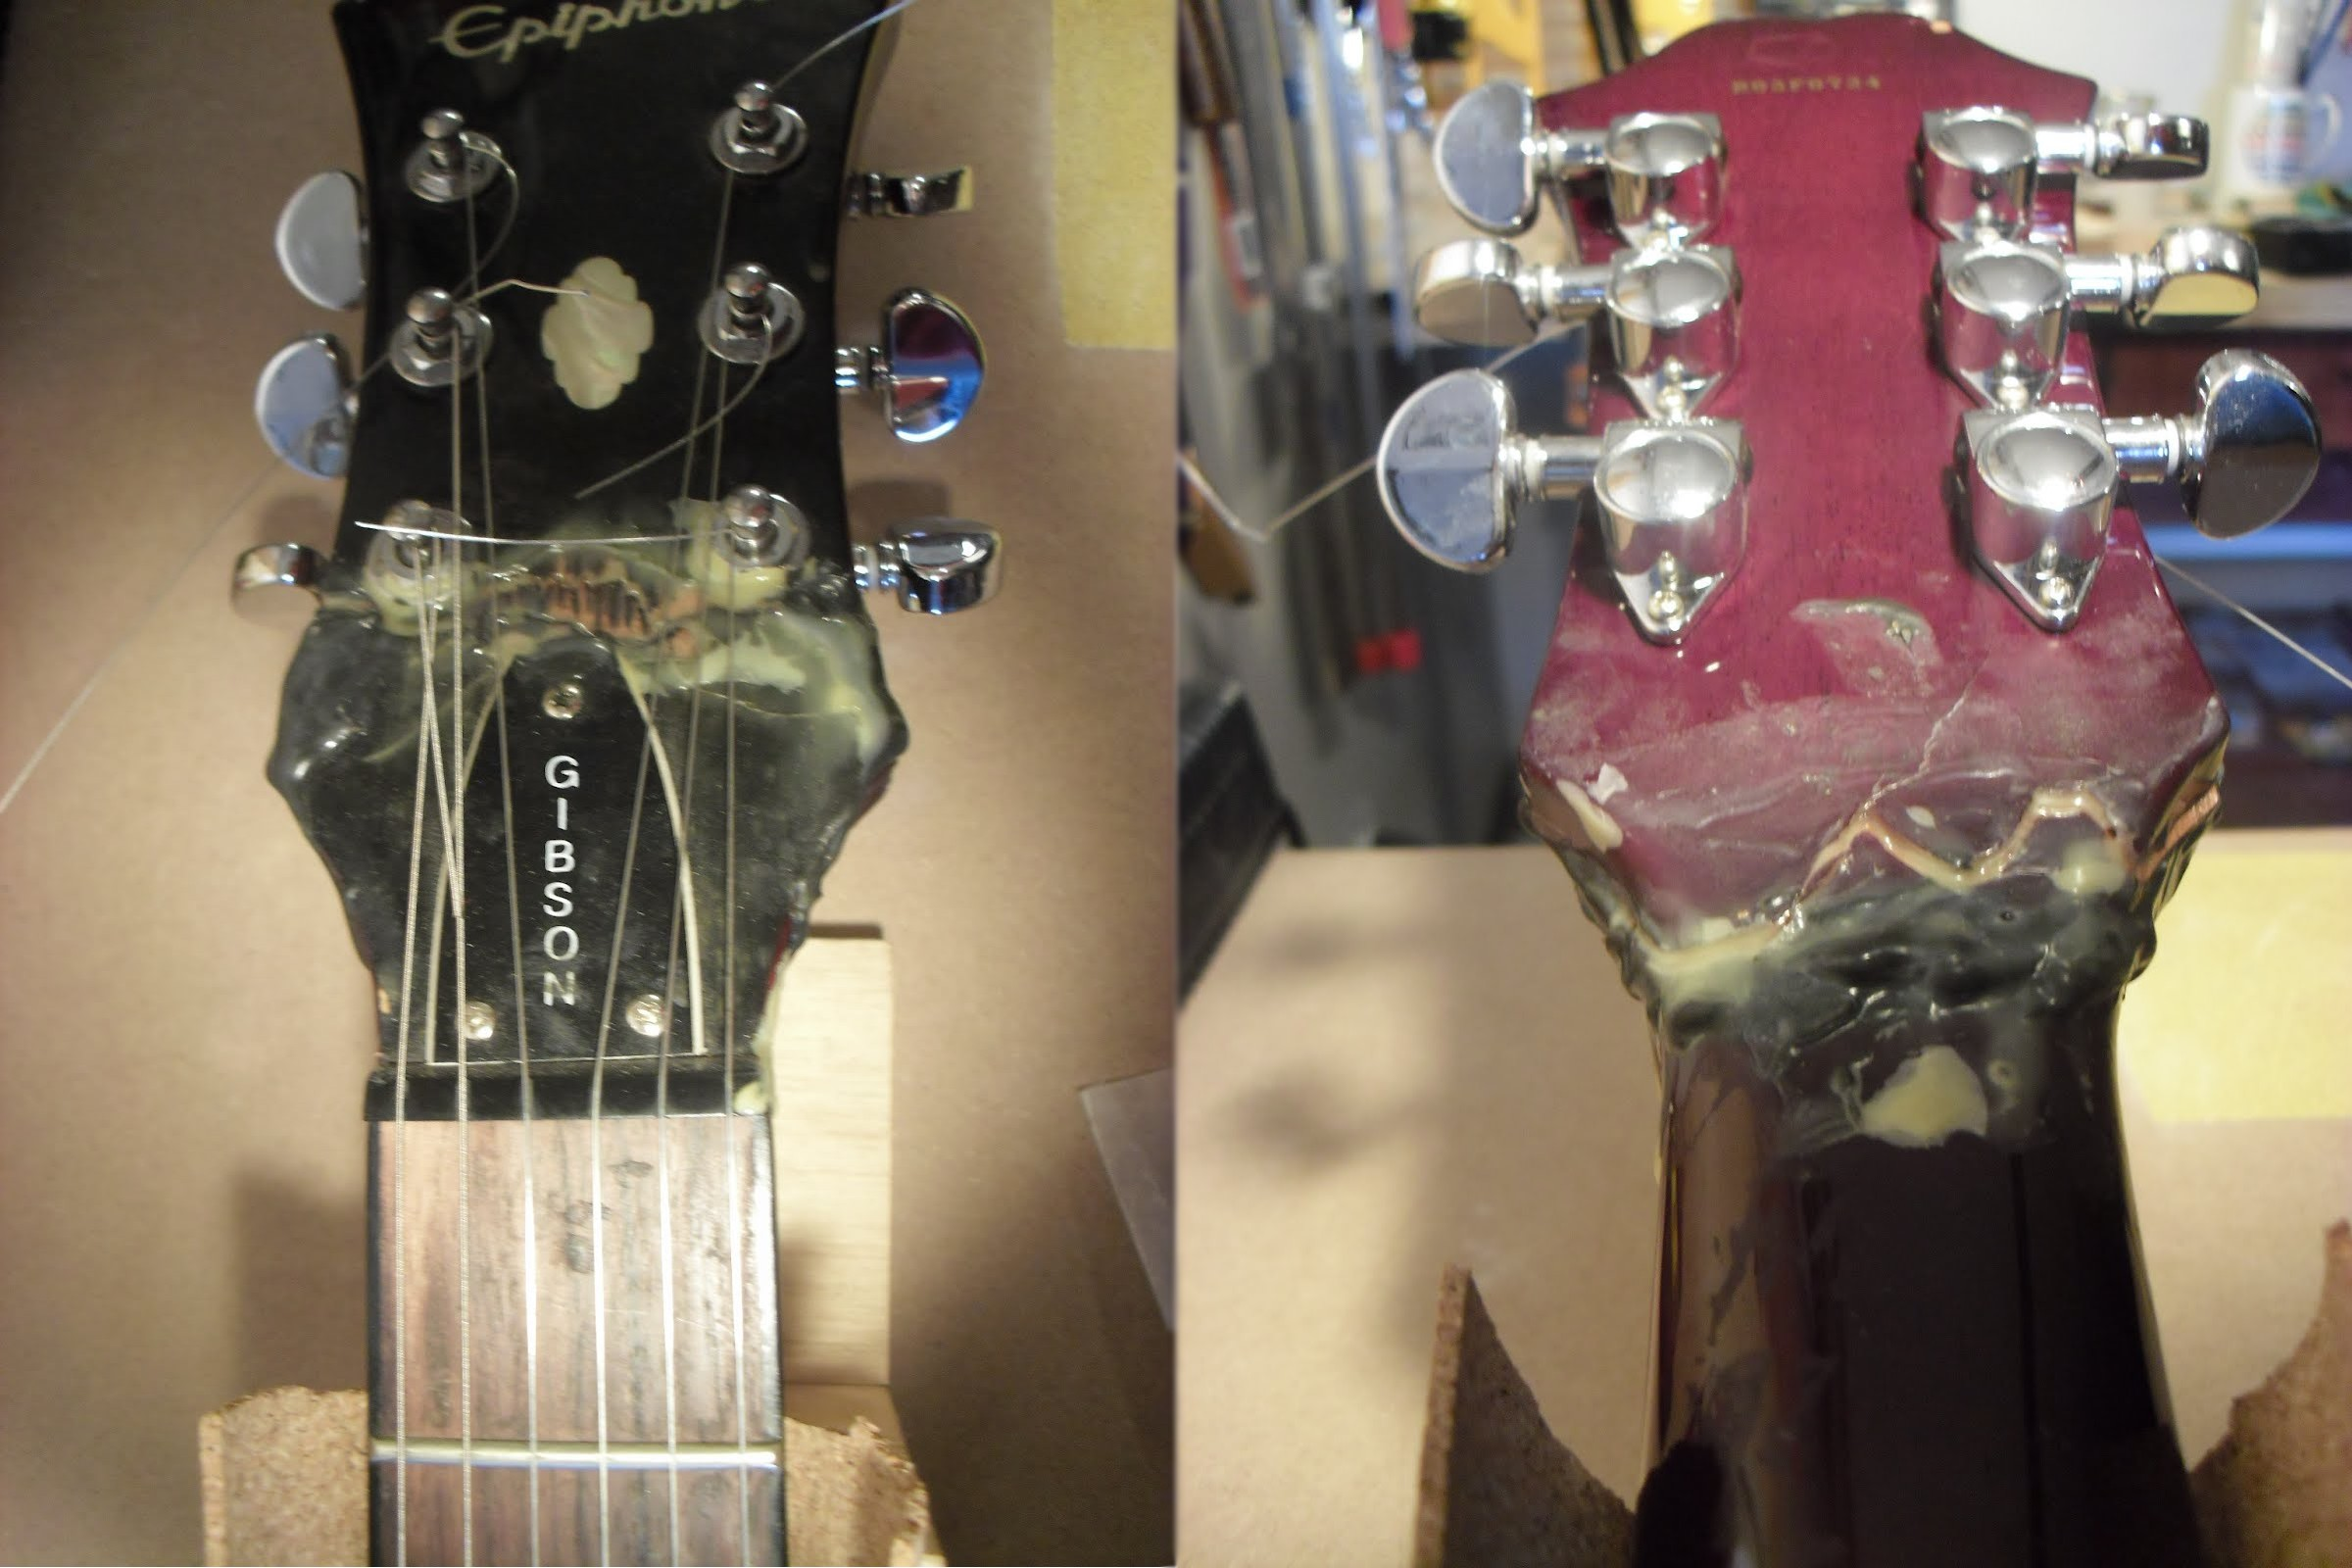 Epiphone-Headstock-Repair